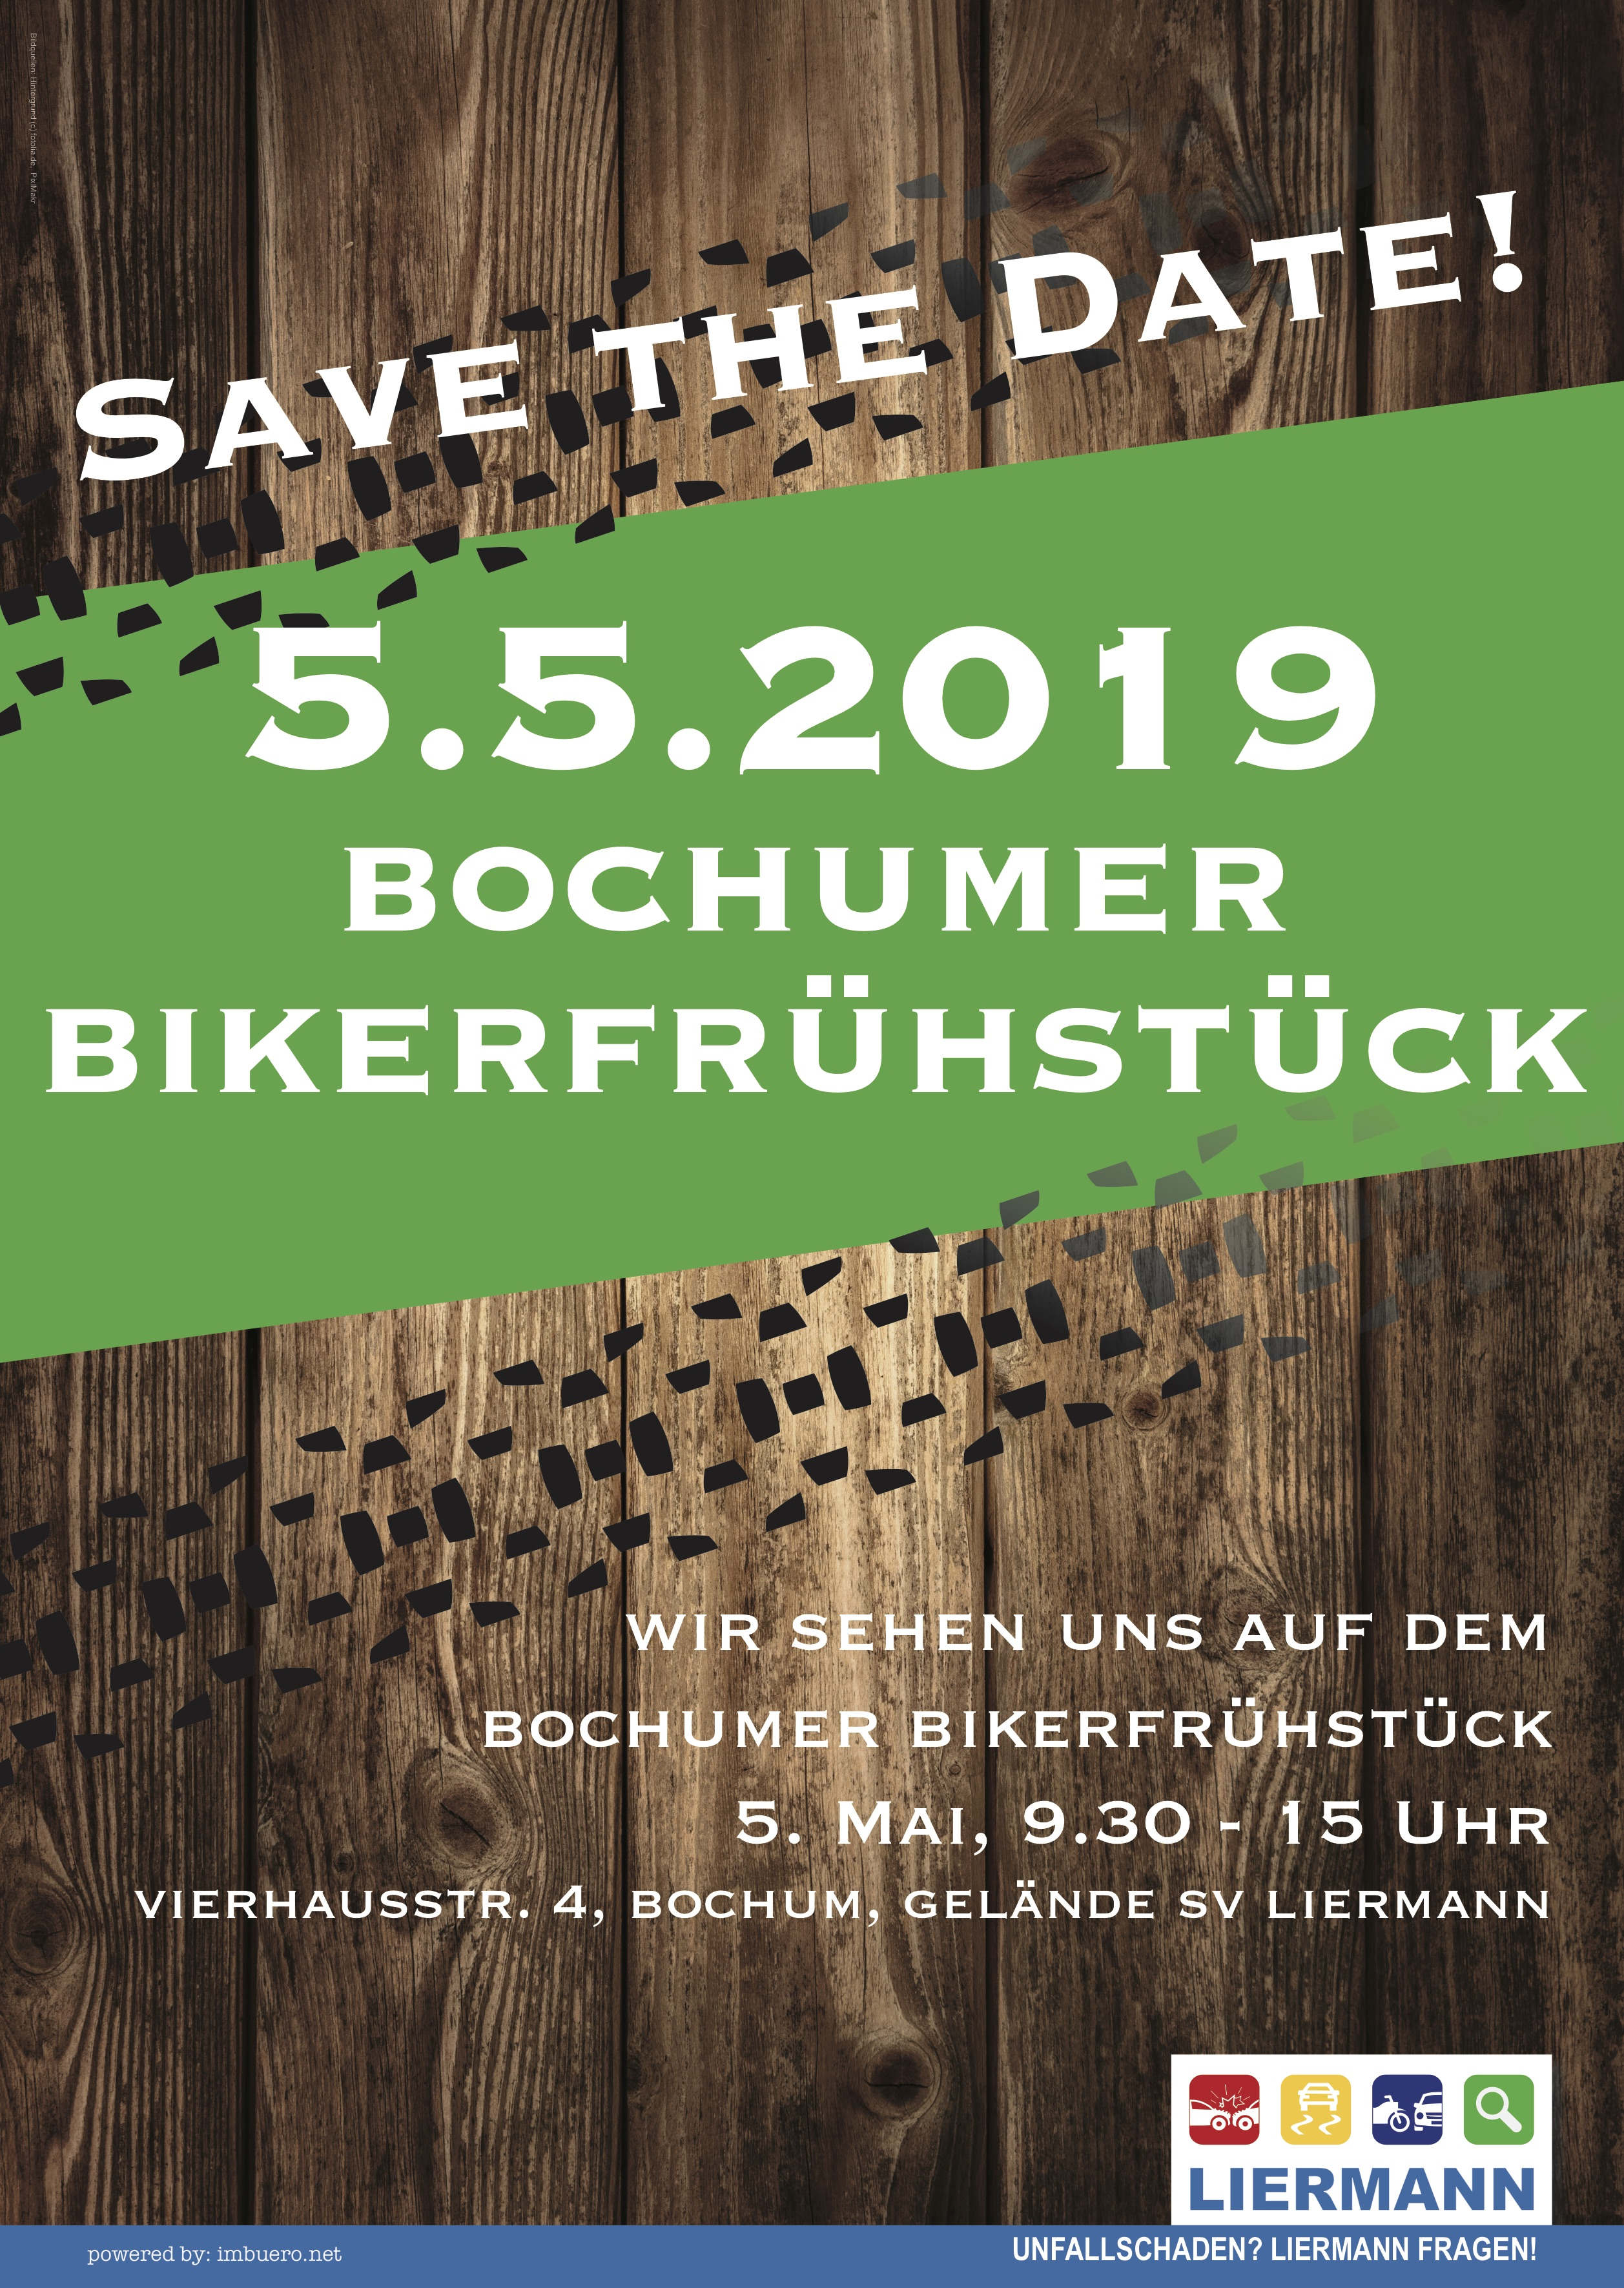 Bikerfrühstück 2019 - Save the Date